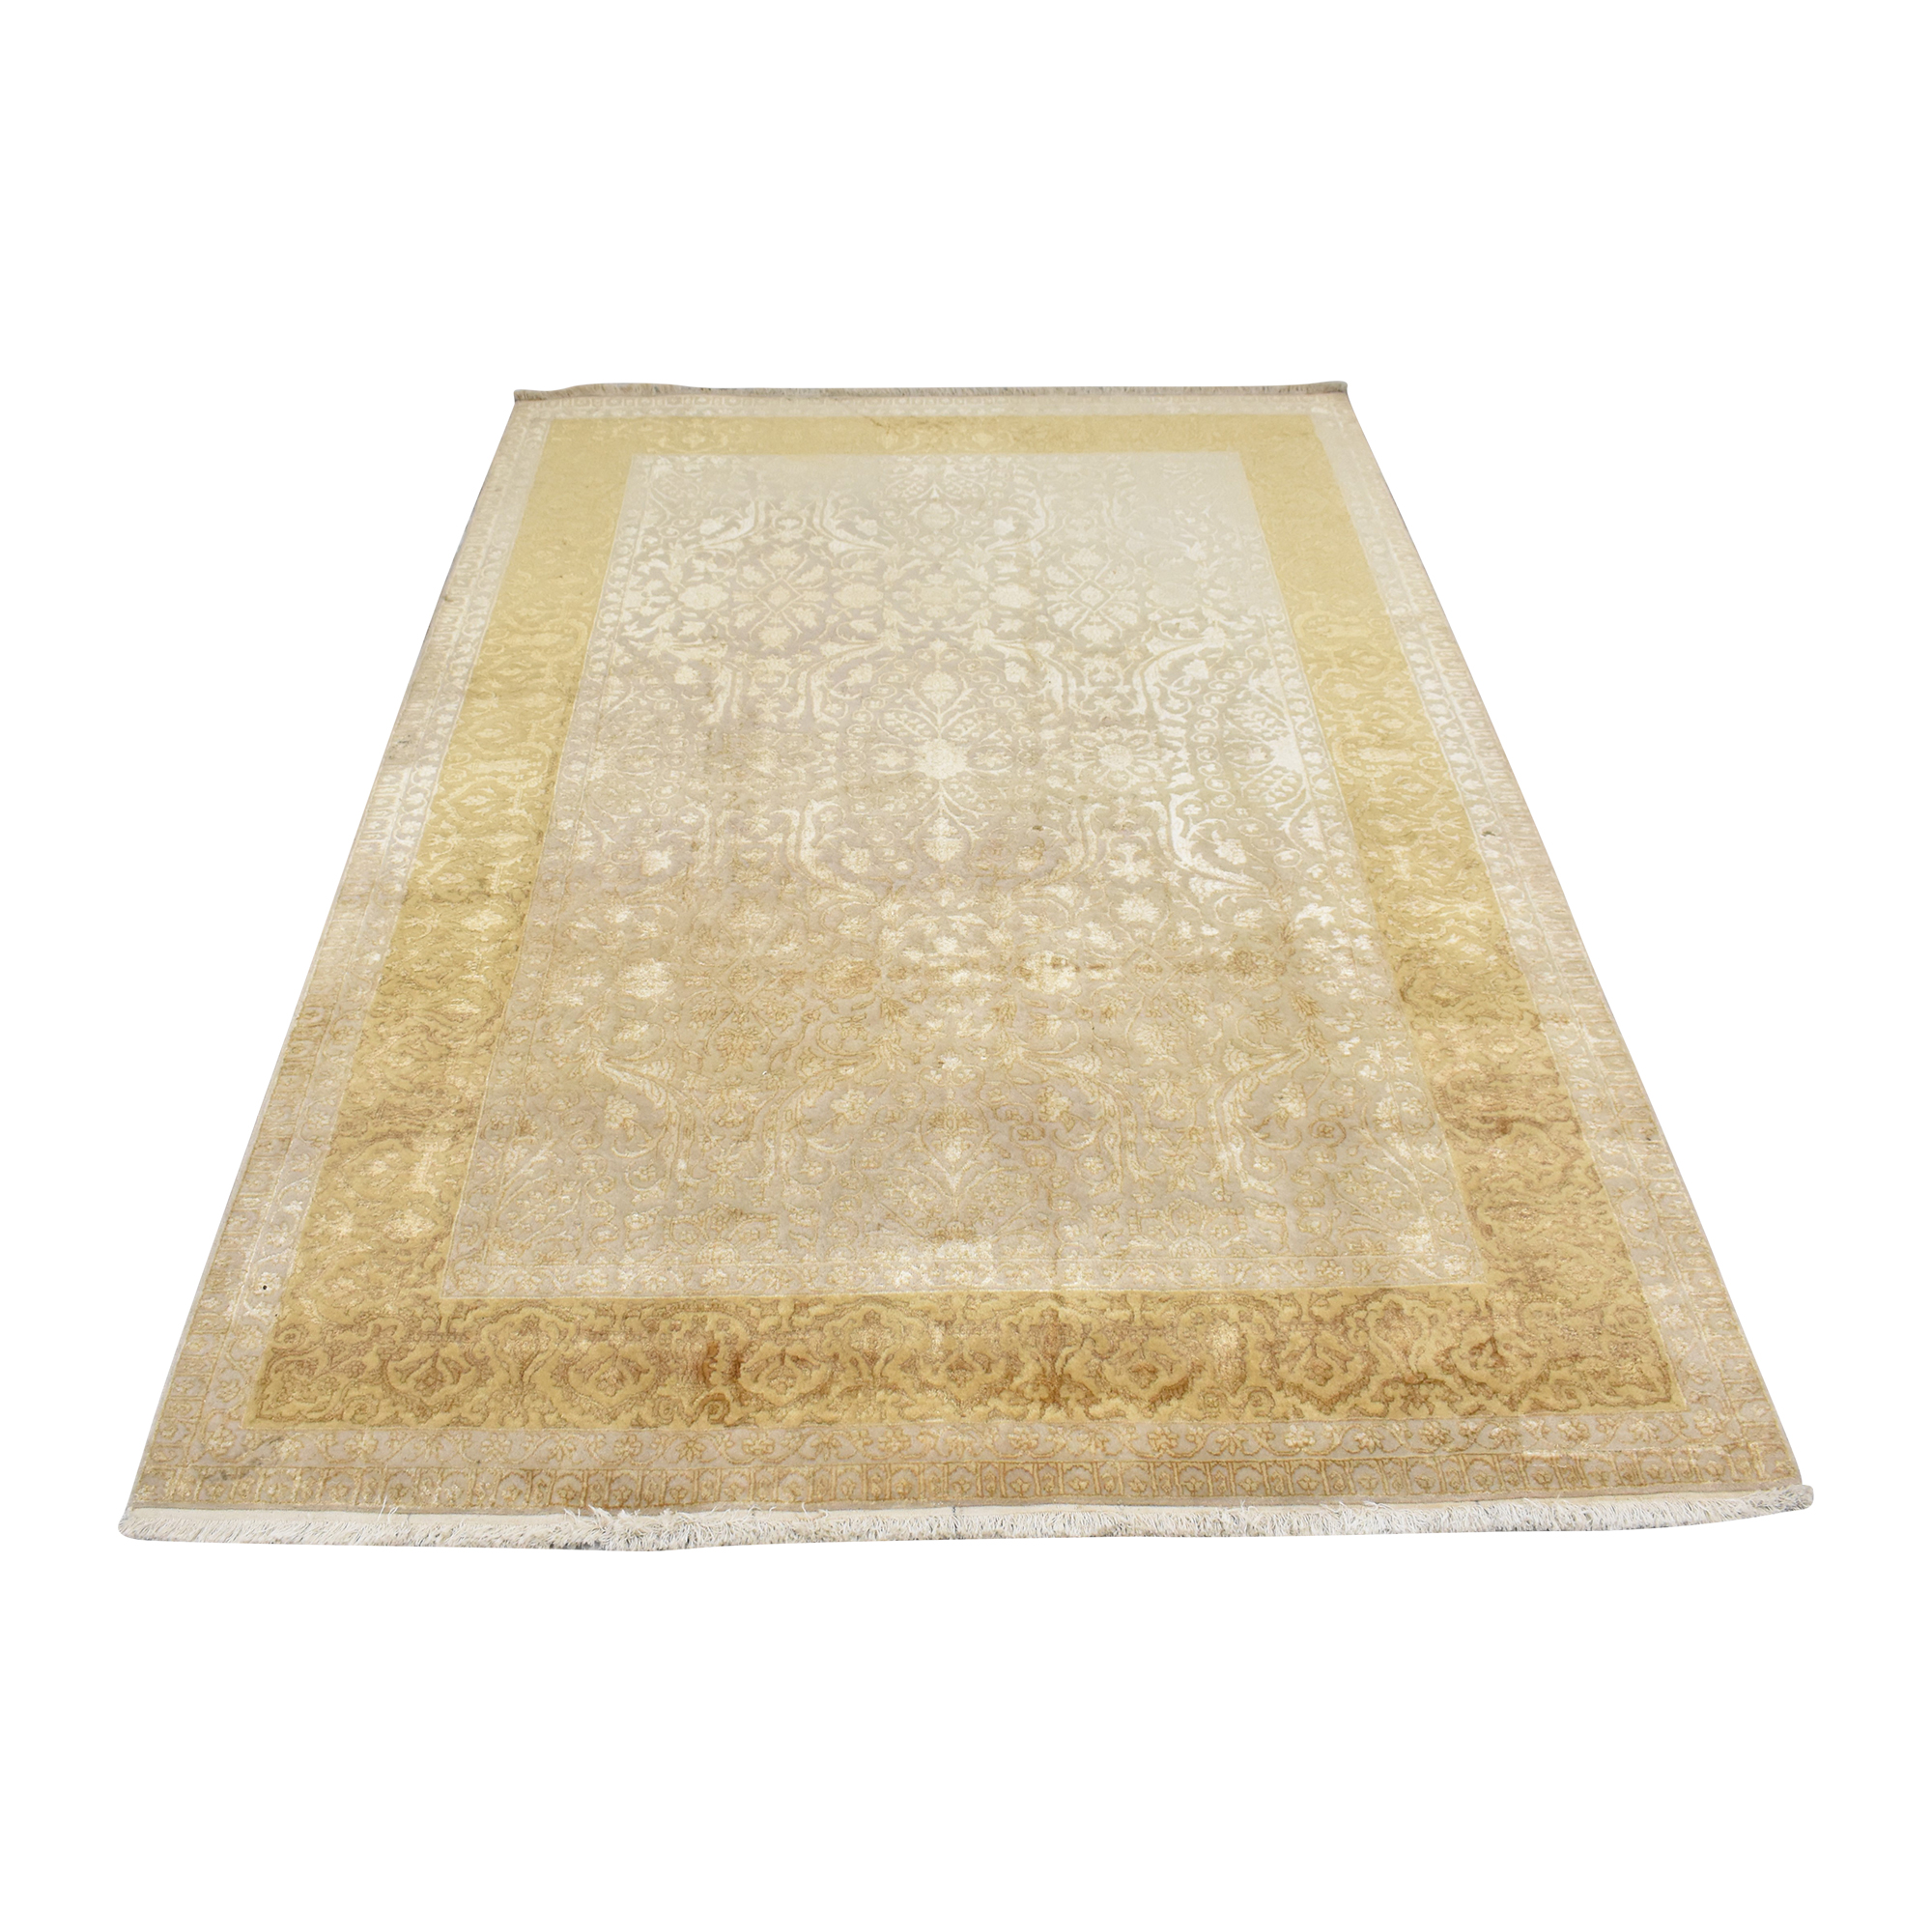 Safavieh Safavieh Area Rug coupon